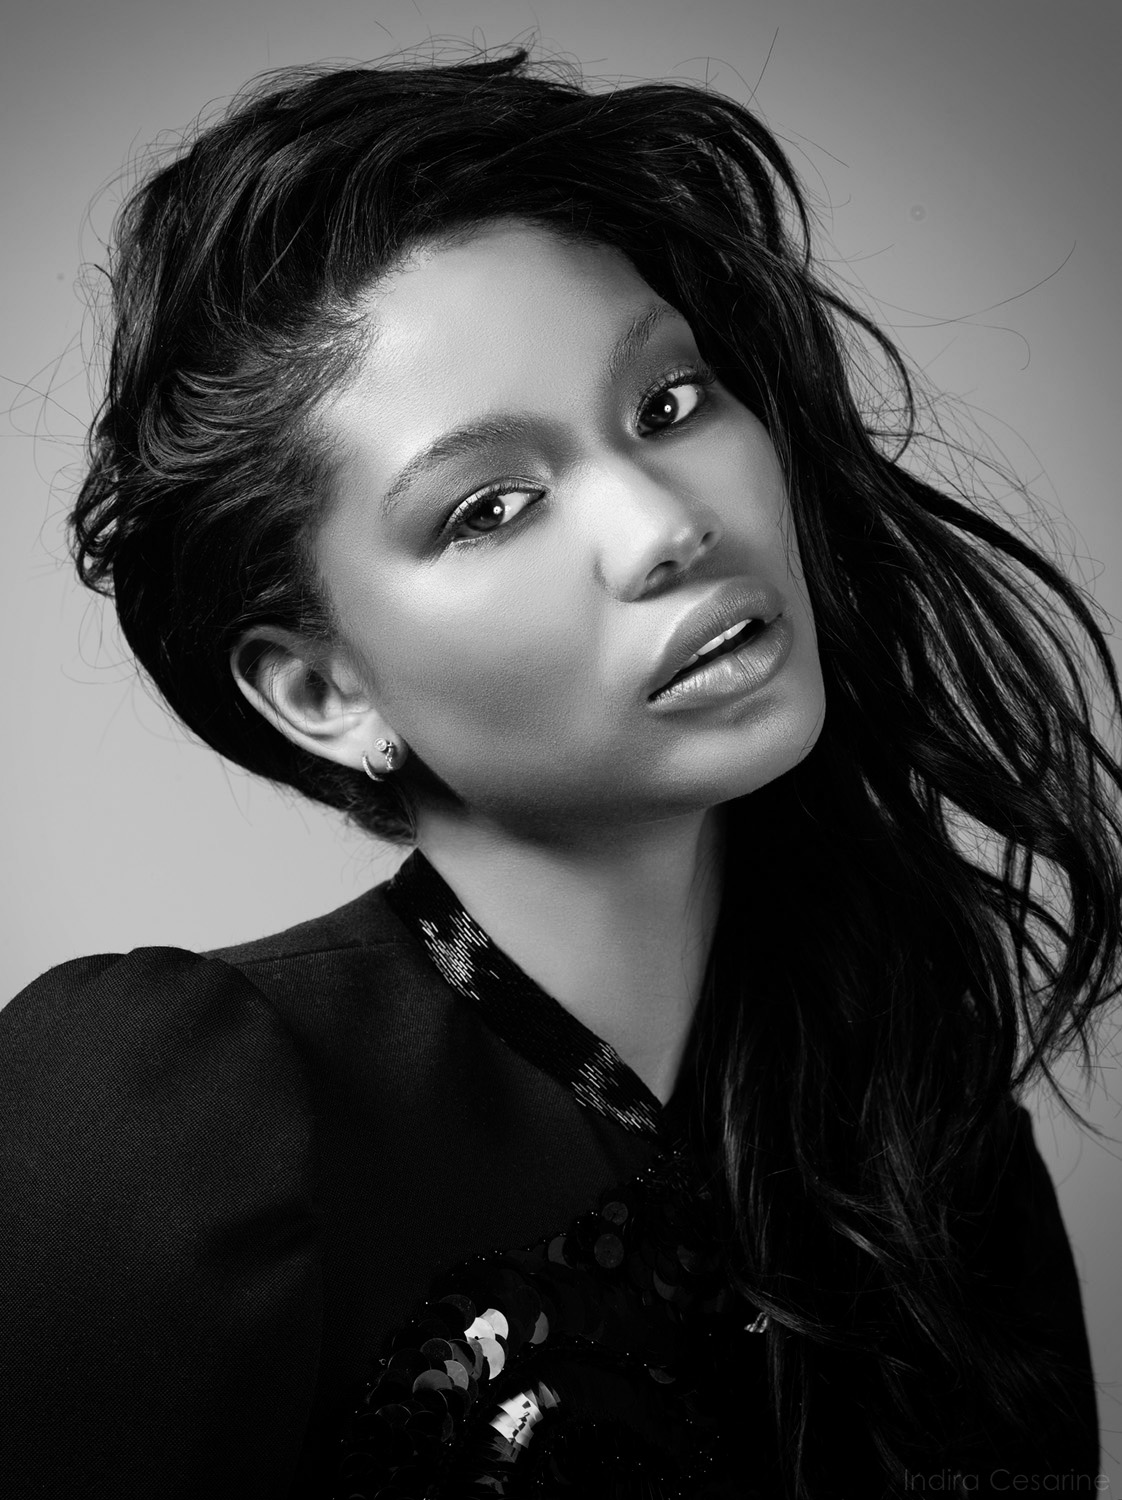 Chanel-Iman-Photography-by-Indira-Cesarine-011-bw.jpg